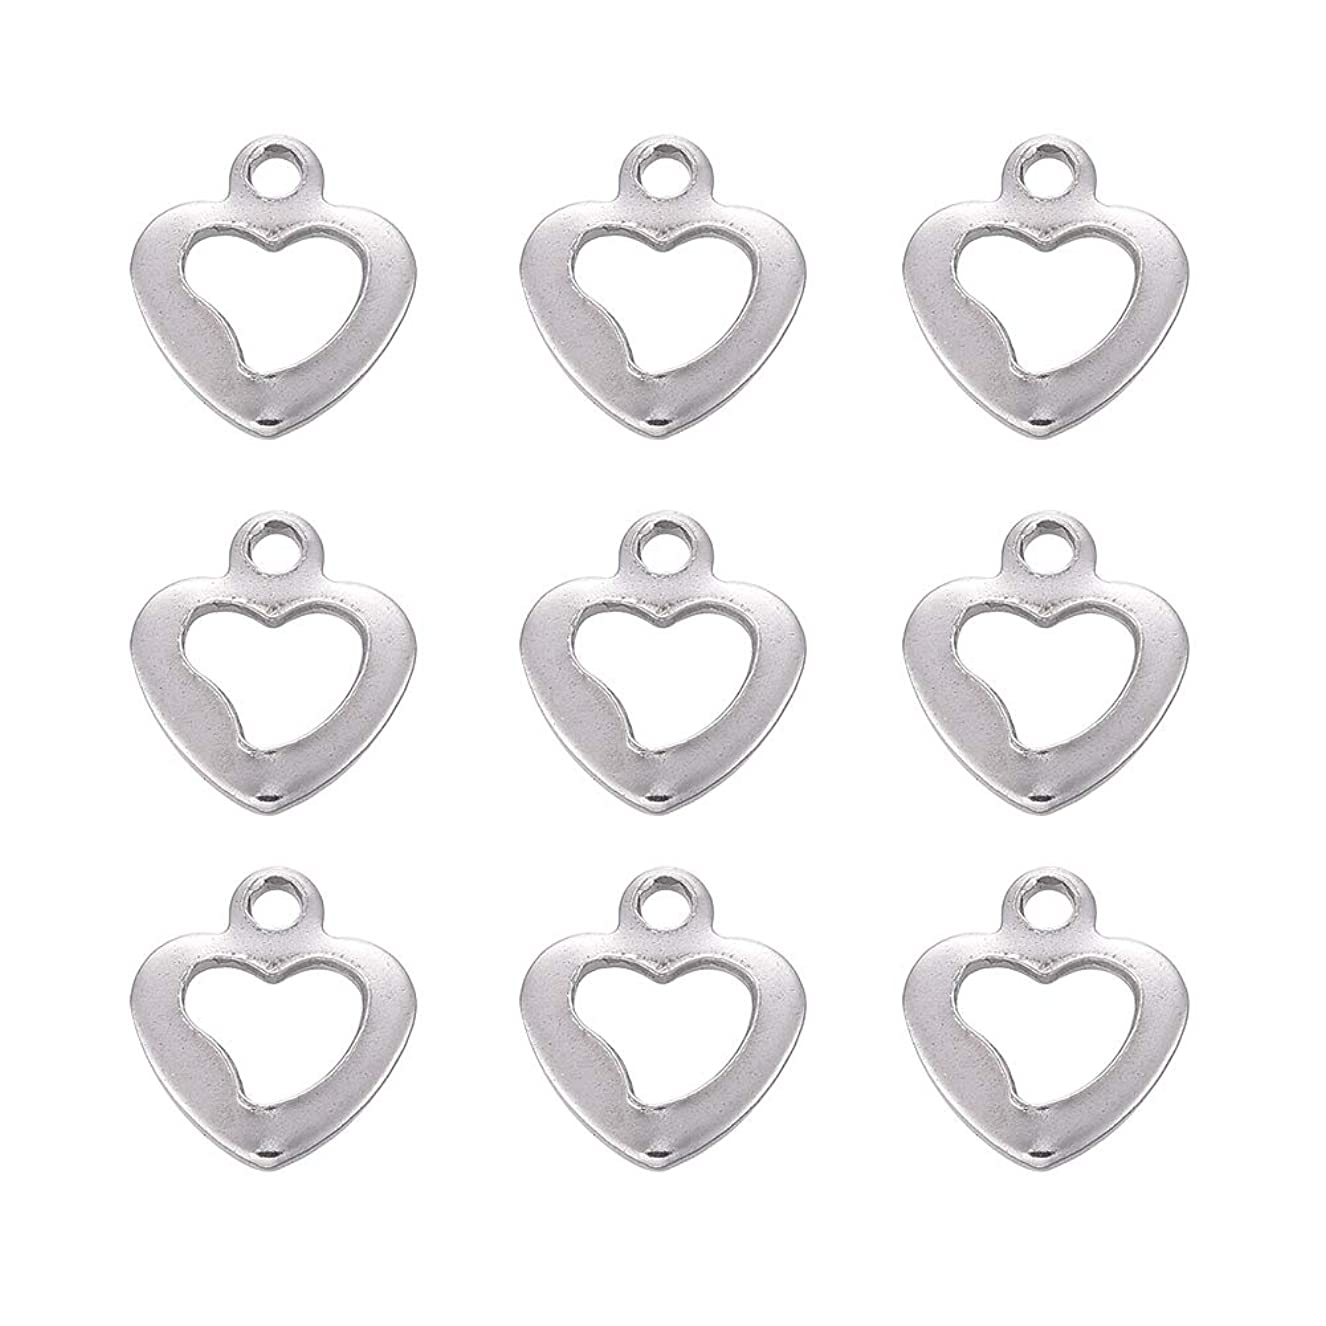 DanLingJewelry 304 Stainless Steel Hollow Heart Charms Pendants Jewelry Making Findings for DIY Necklaces Bracelets Earrings(Stainless Steel Color-20pcs,10 x 9 x 1mm,Hole:1mm) fpfcssytmi2601